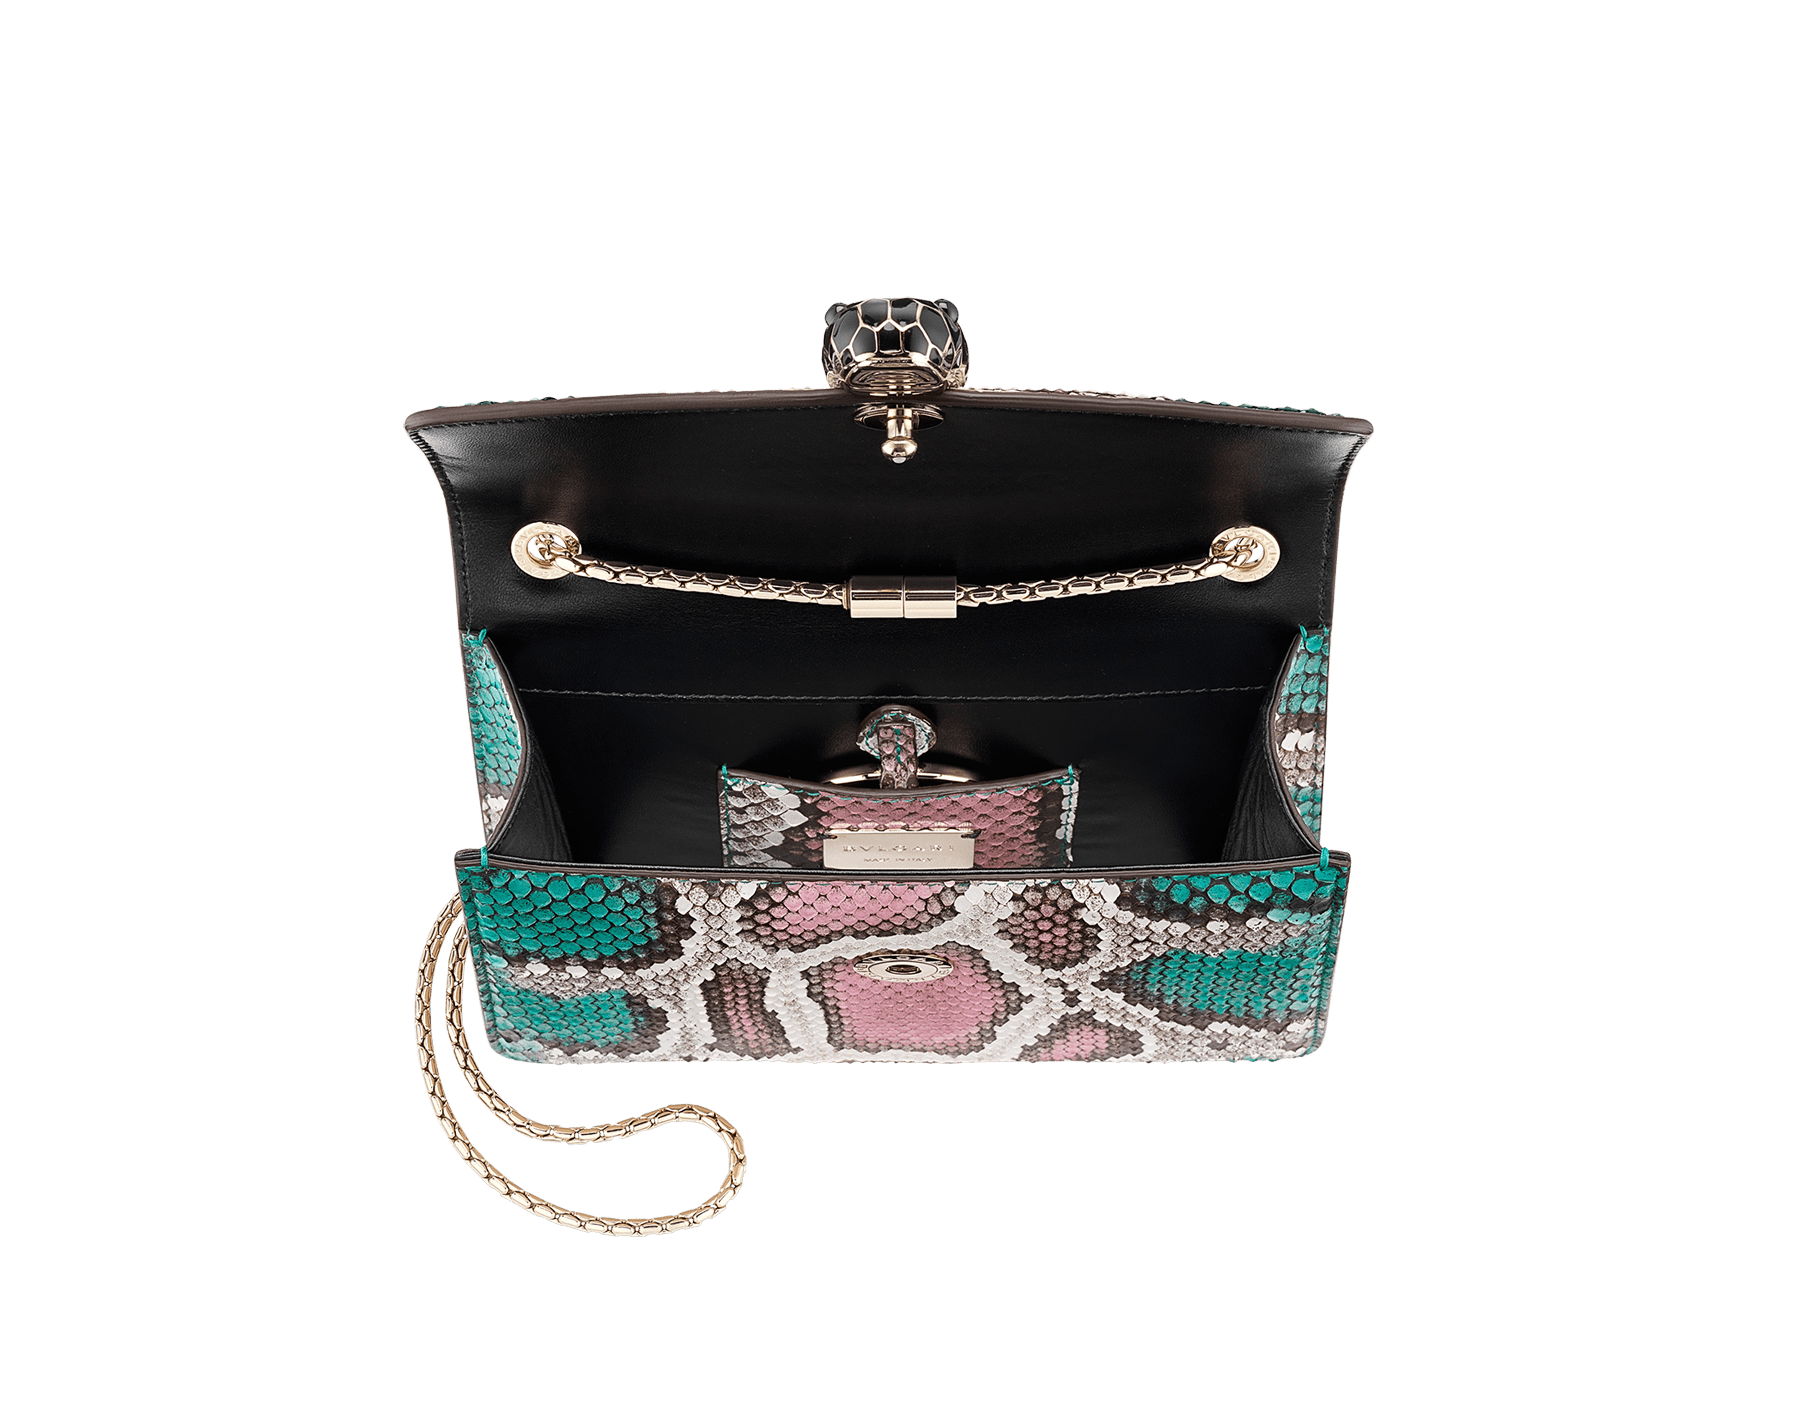 """Serpenti Forever"" crossbody bag in arctic jade Psiche python skin. Iconic snakehead closure in light gold plated brass enriched with black and arctic jade enamel and black onyx eyes. 288938 image 4"